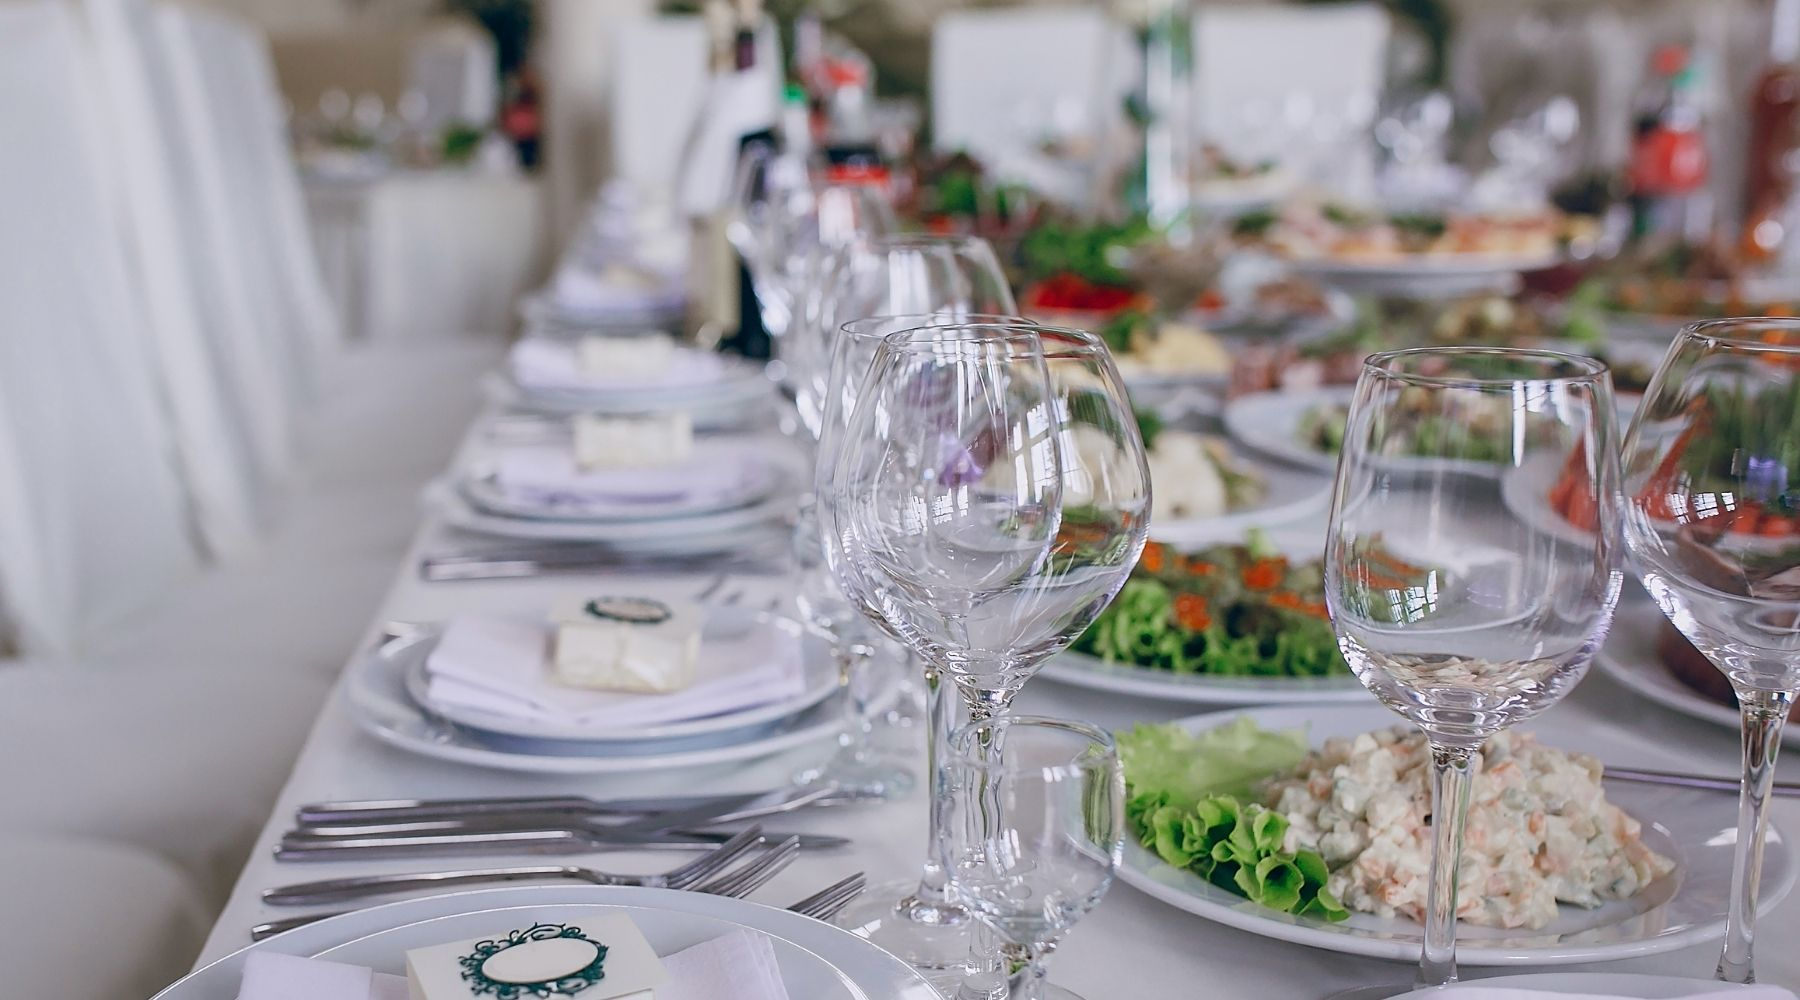 creative buffet - Creative ways to save money on your wedding: Top 20